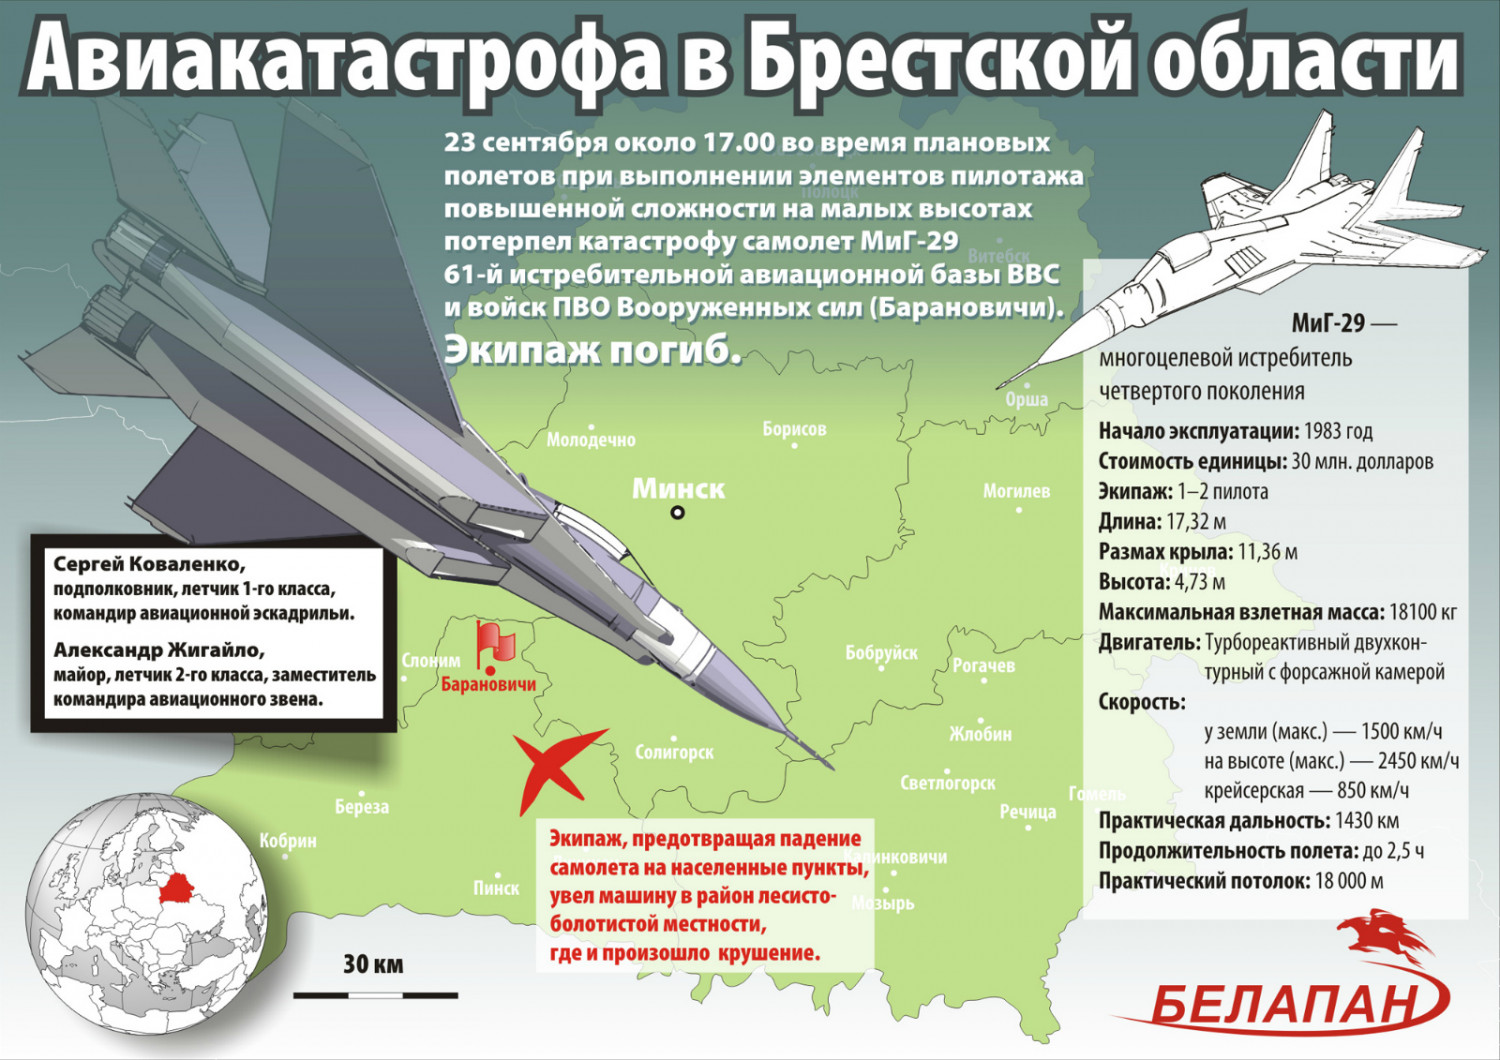 MiG-29 disaster in Belarus Infographic